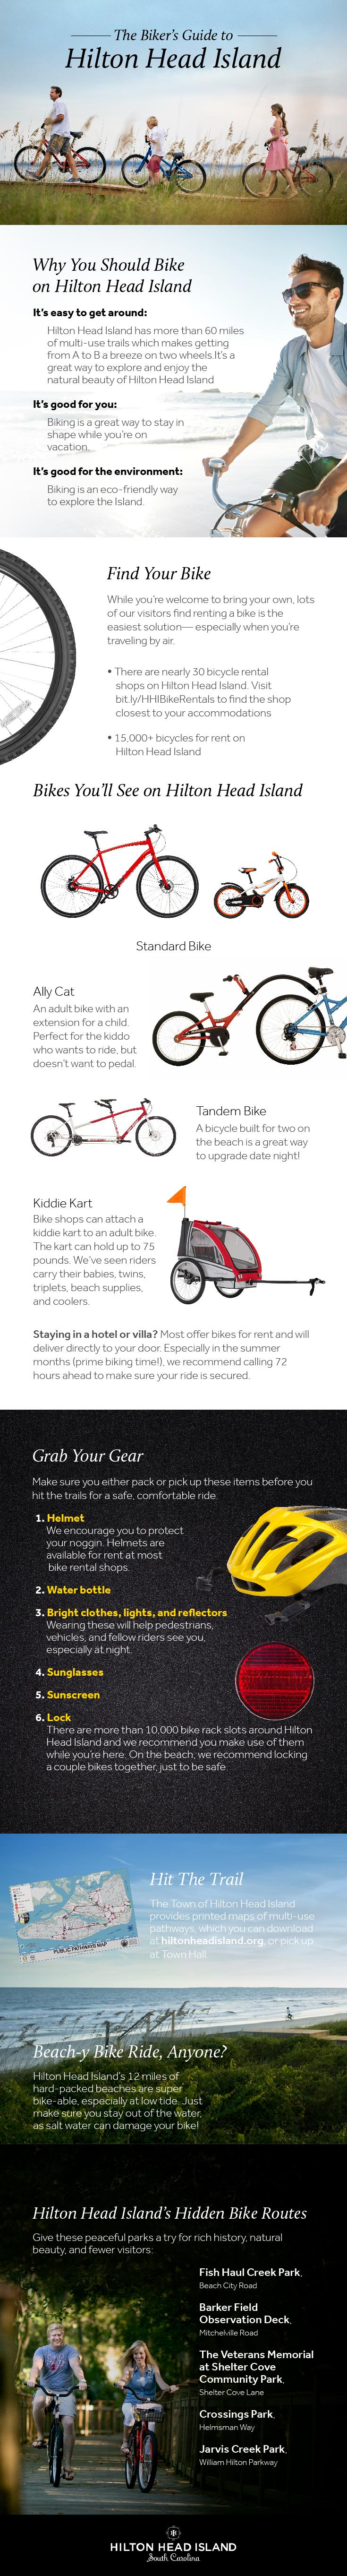 Hilton Head Island Biking Infographic